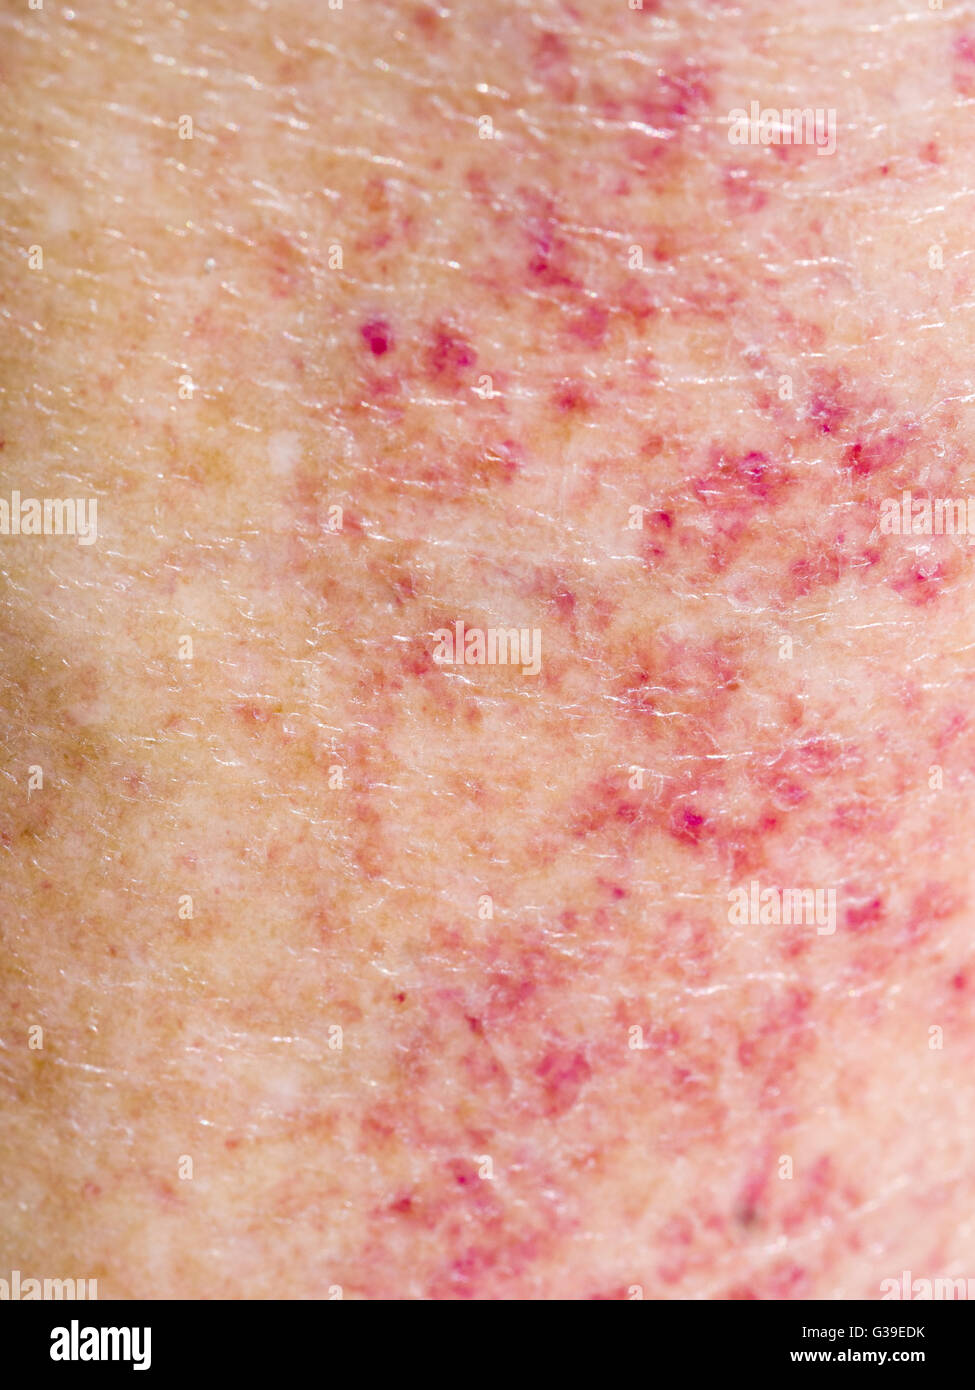 Red rash from combining sunbathing and medication. Allergy, sensitivity. - Stock Image